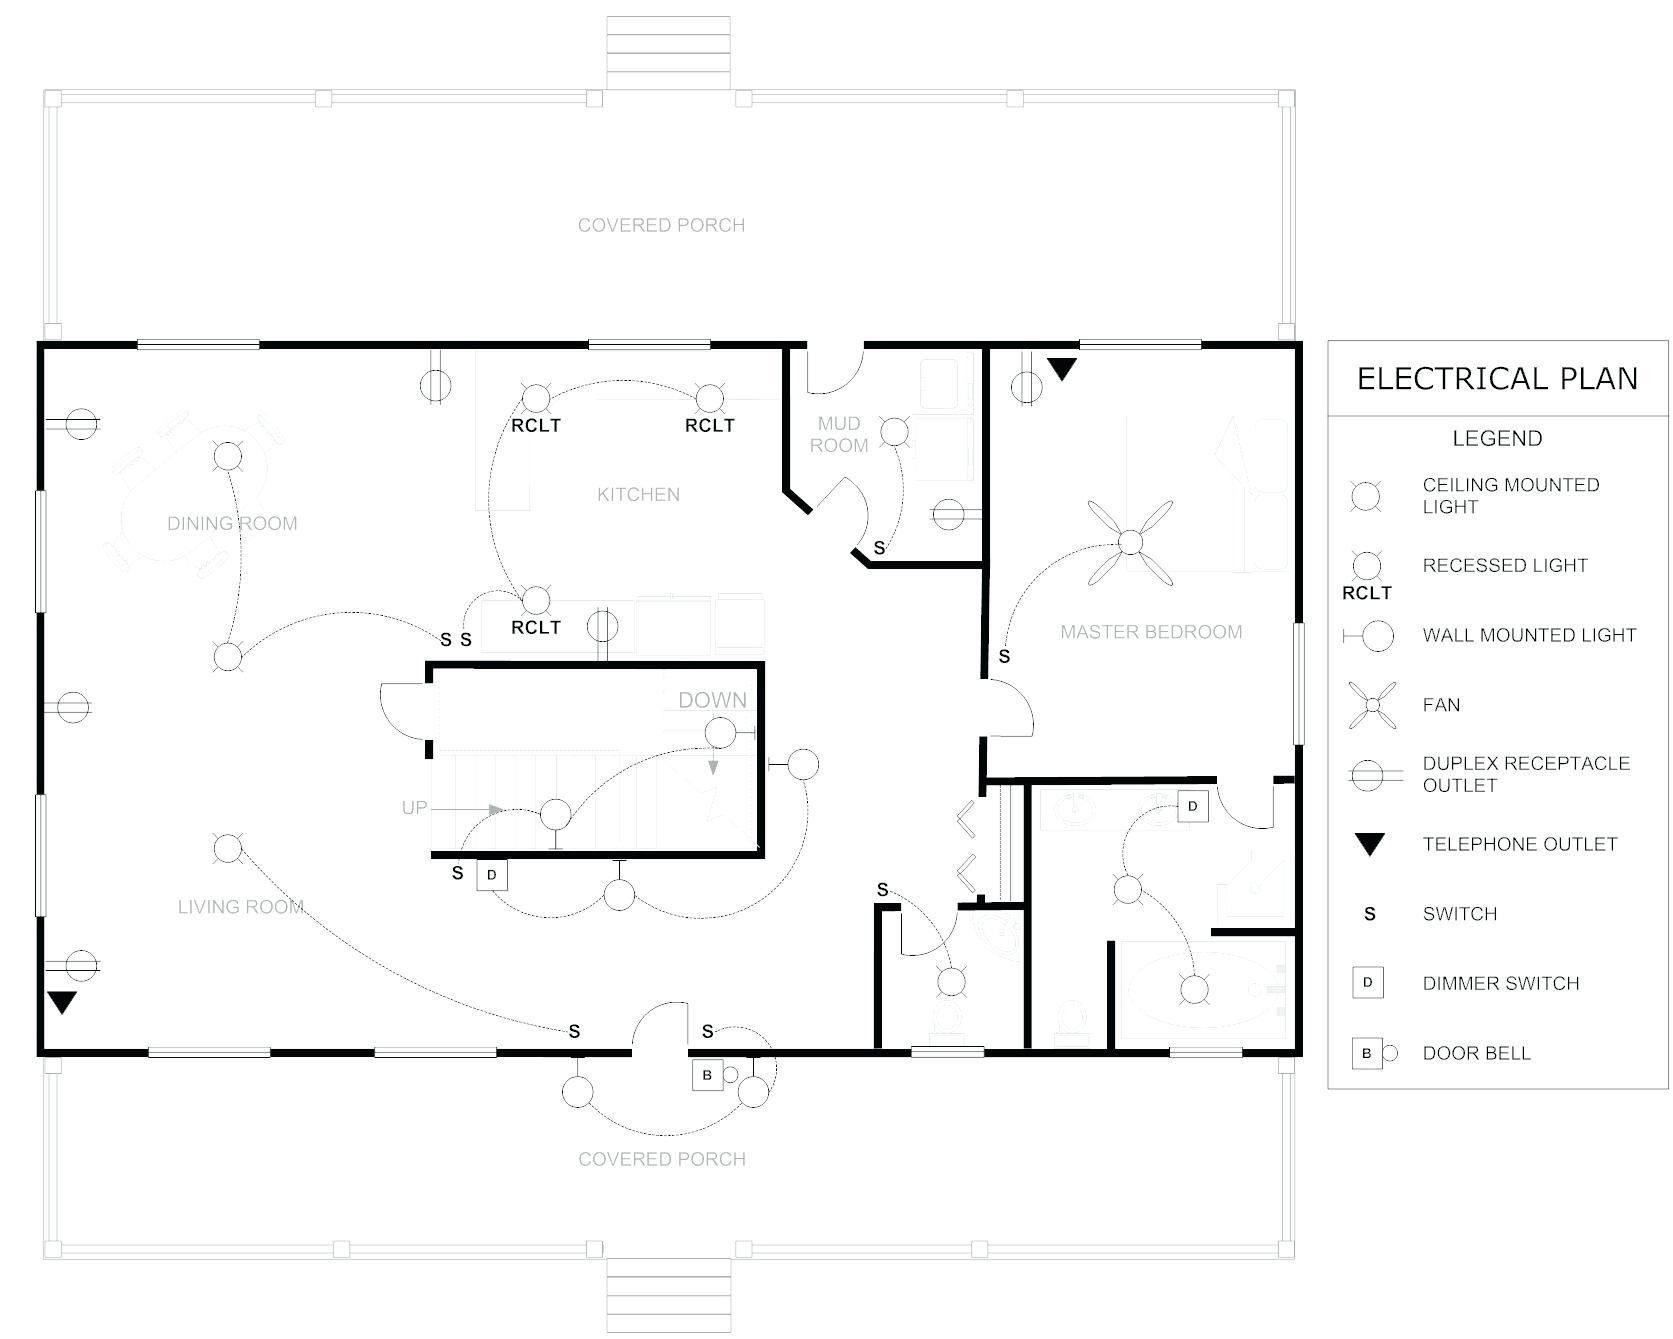 New Electrical Floor Plan Sample Diagram Wiringdiagram Diagramming Diagramm Visuals Visualisation Graphica Single Line Diagram Line Diagram House Wiring